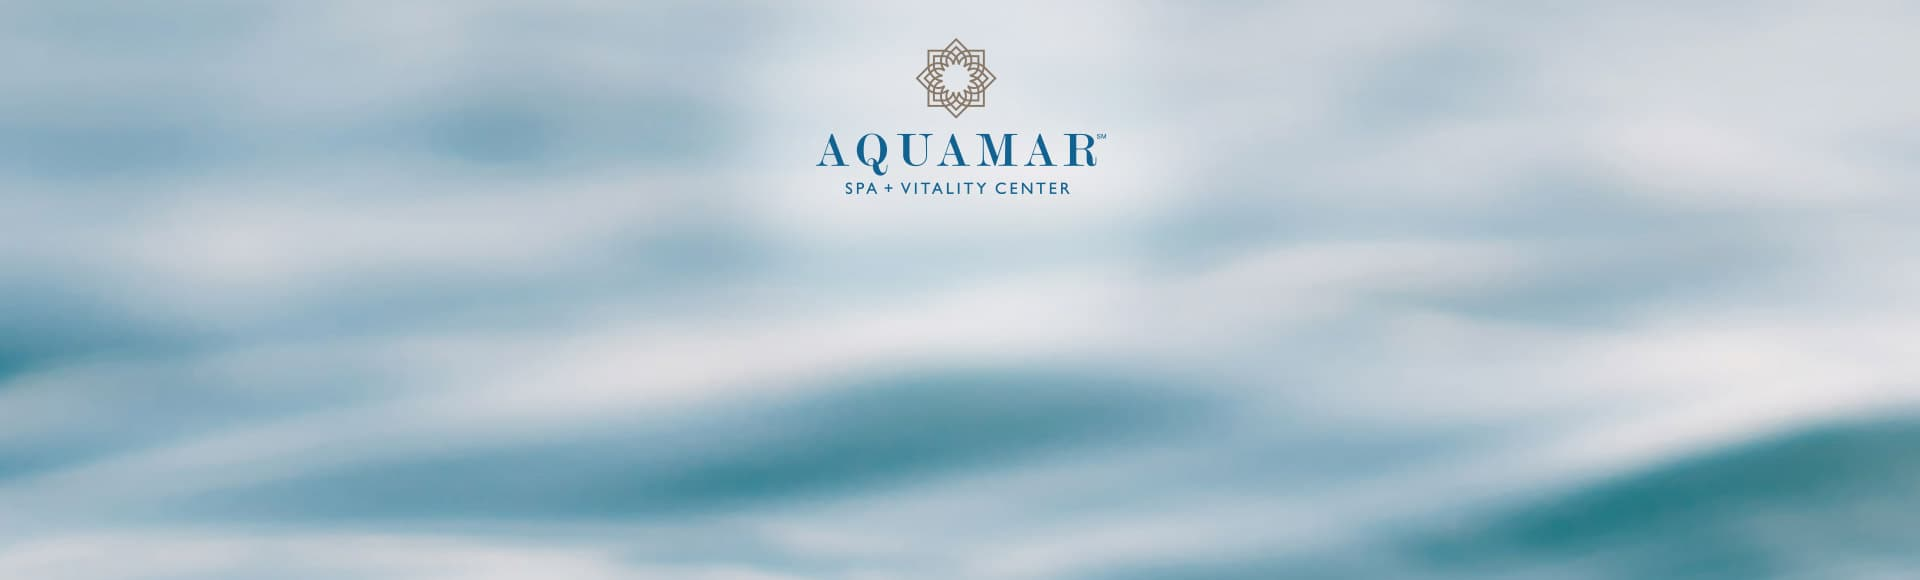 Immersion Piscines Et Spas aquamar spa + vitality center - oceania cruises